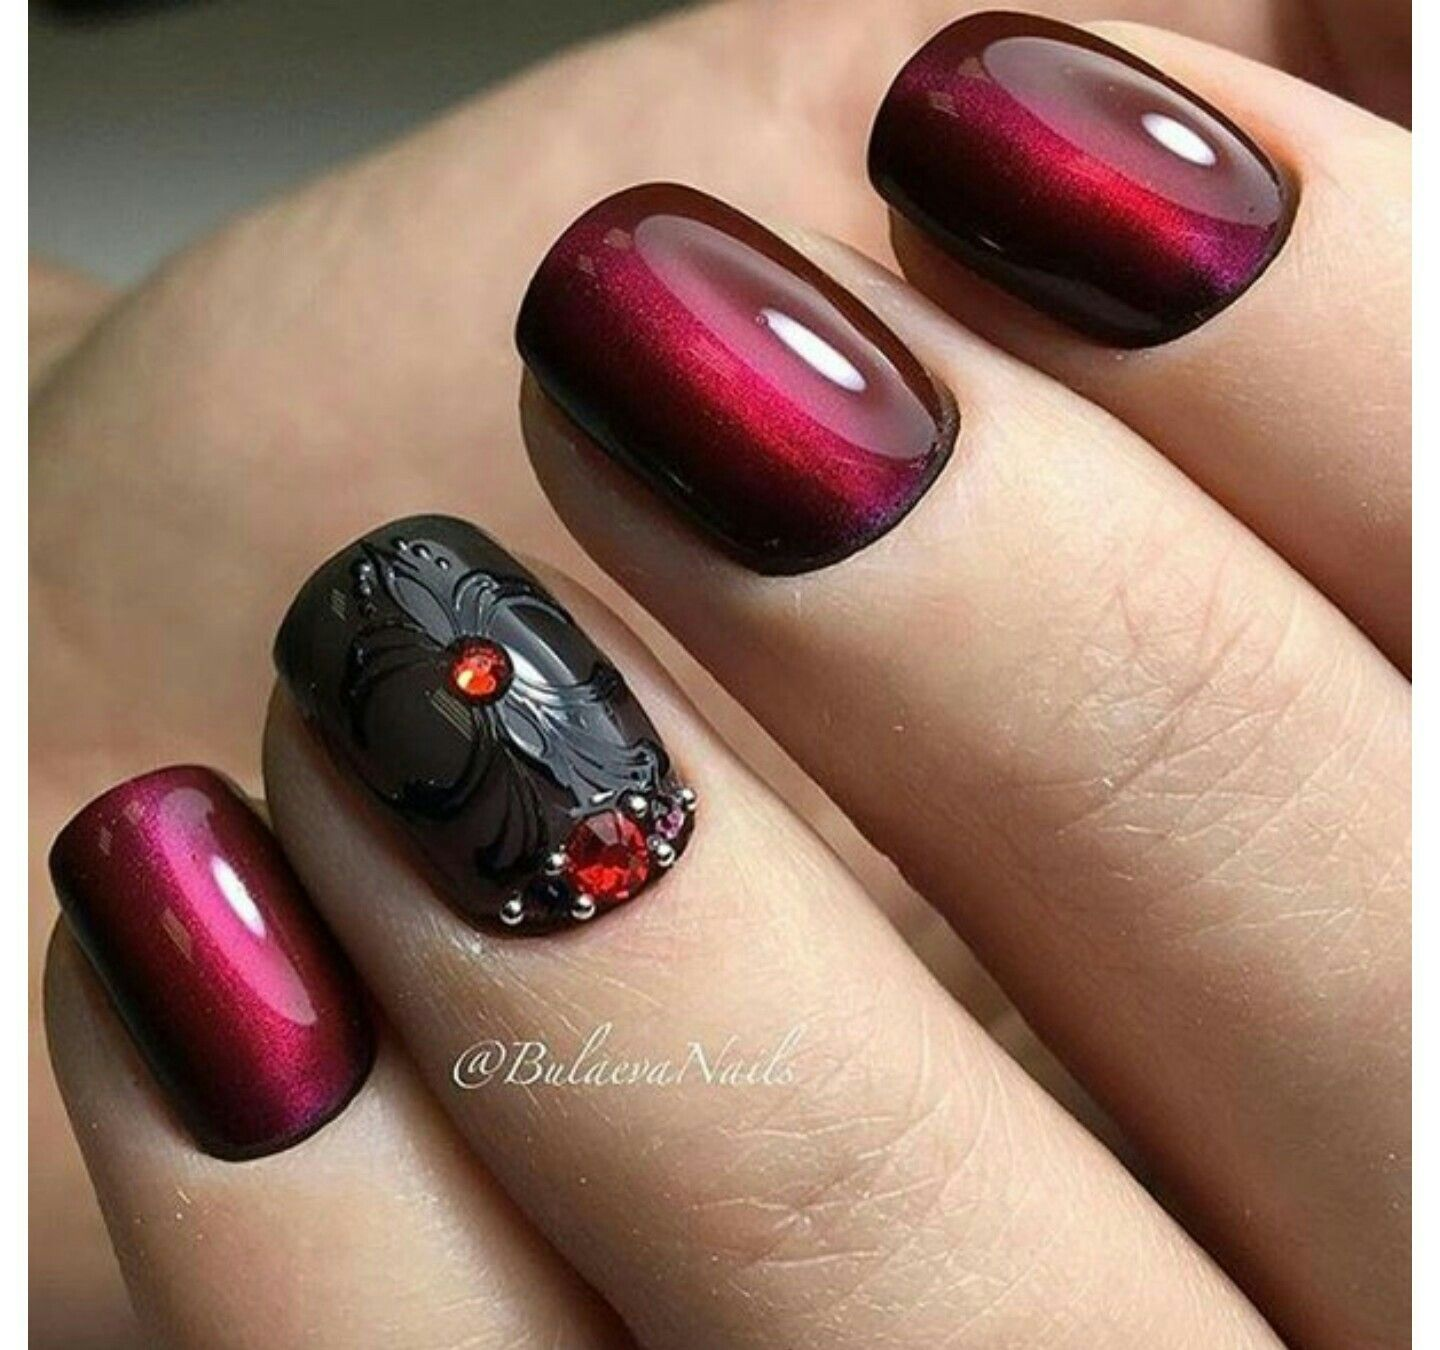 Pin by Cyndi on nails (With images) | Gem nails, Burgundy ...